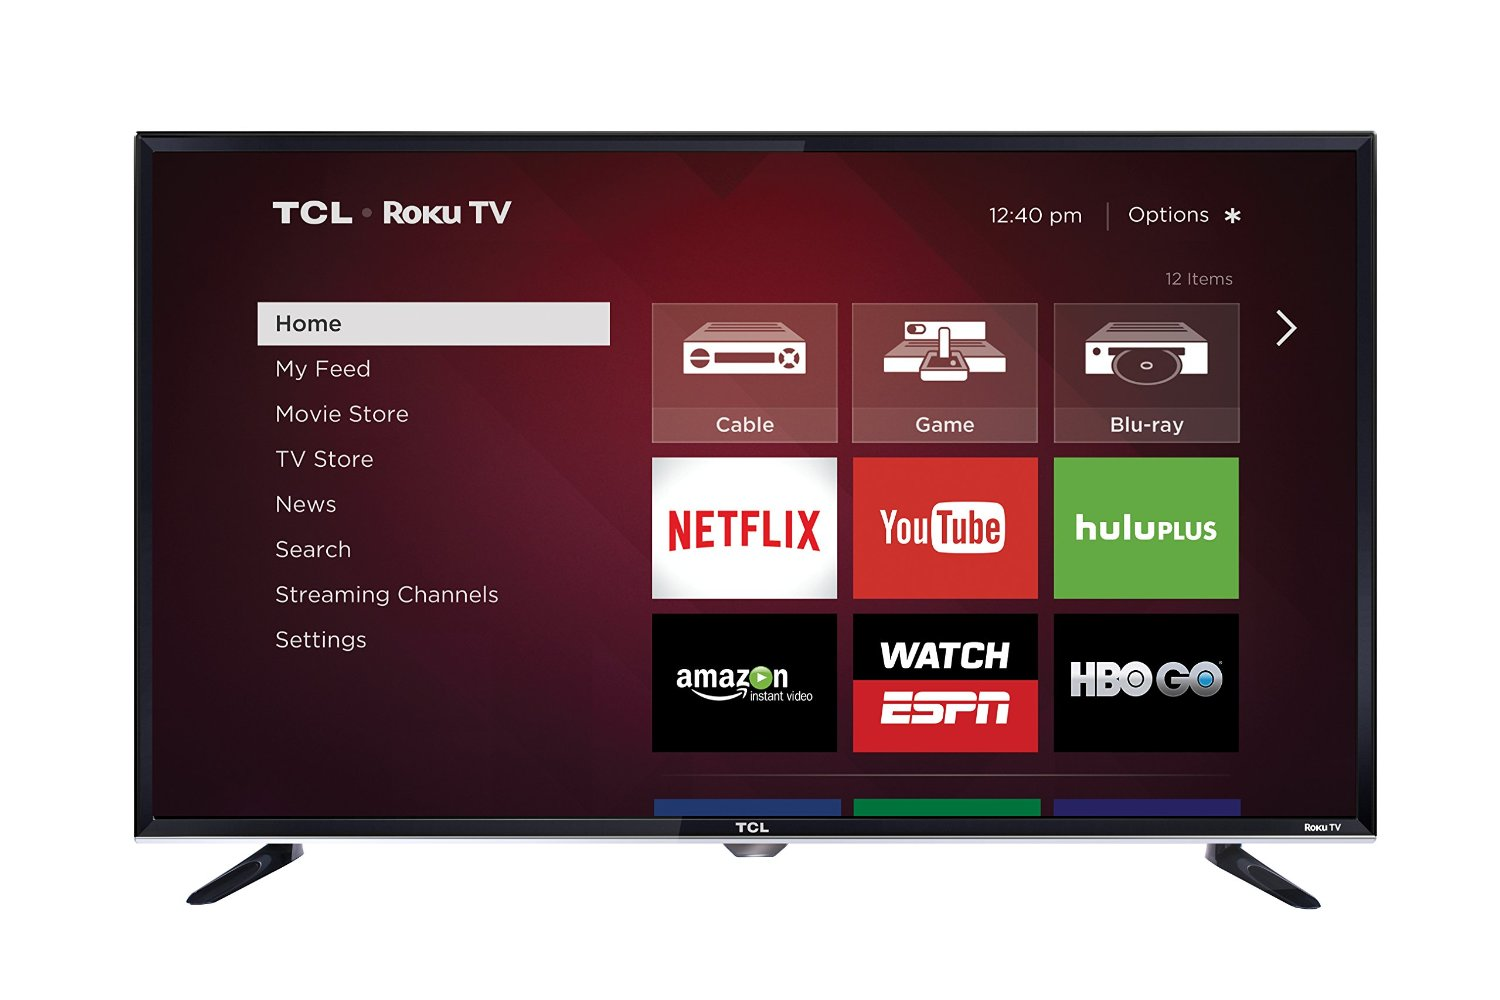 TCL Roku Curved 32-Inch TV Set